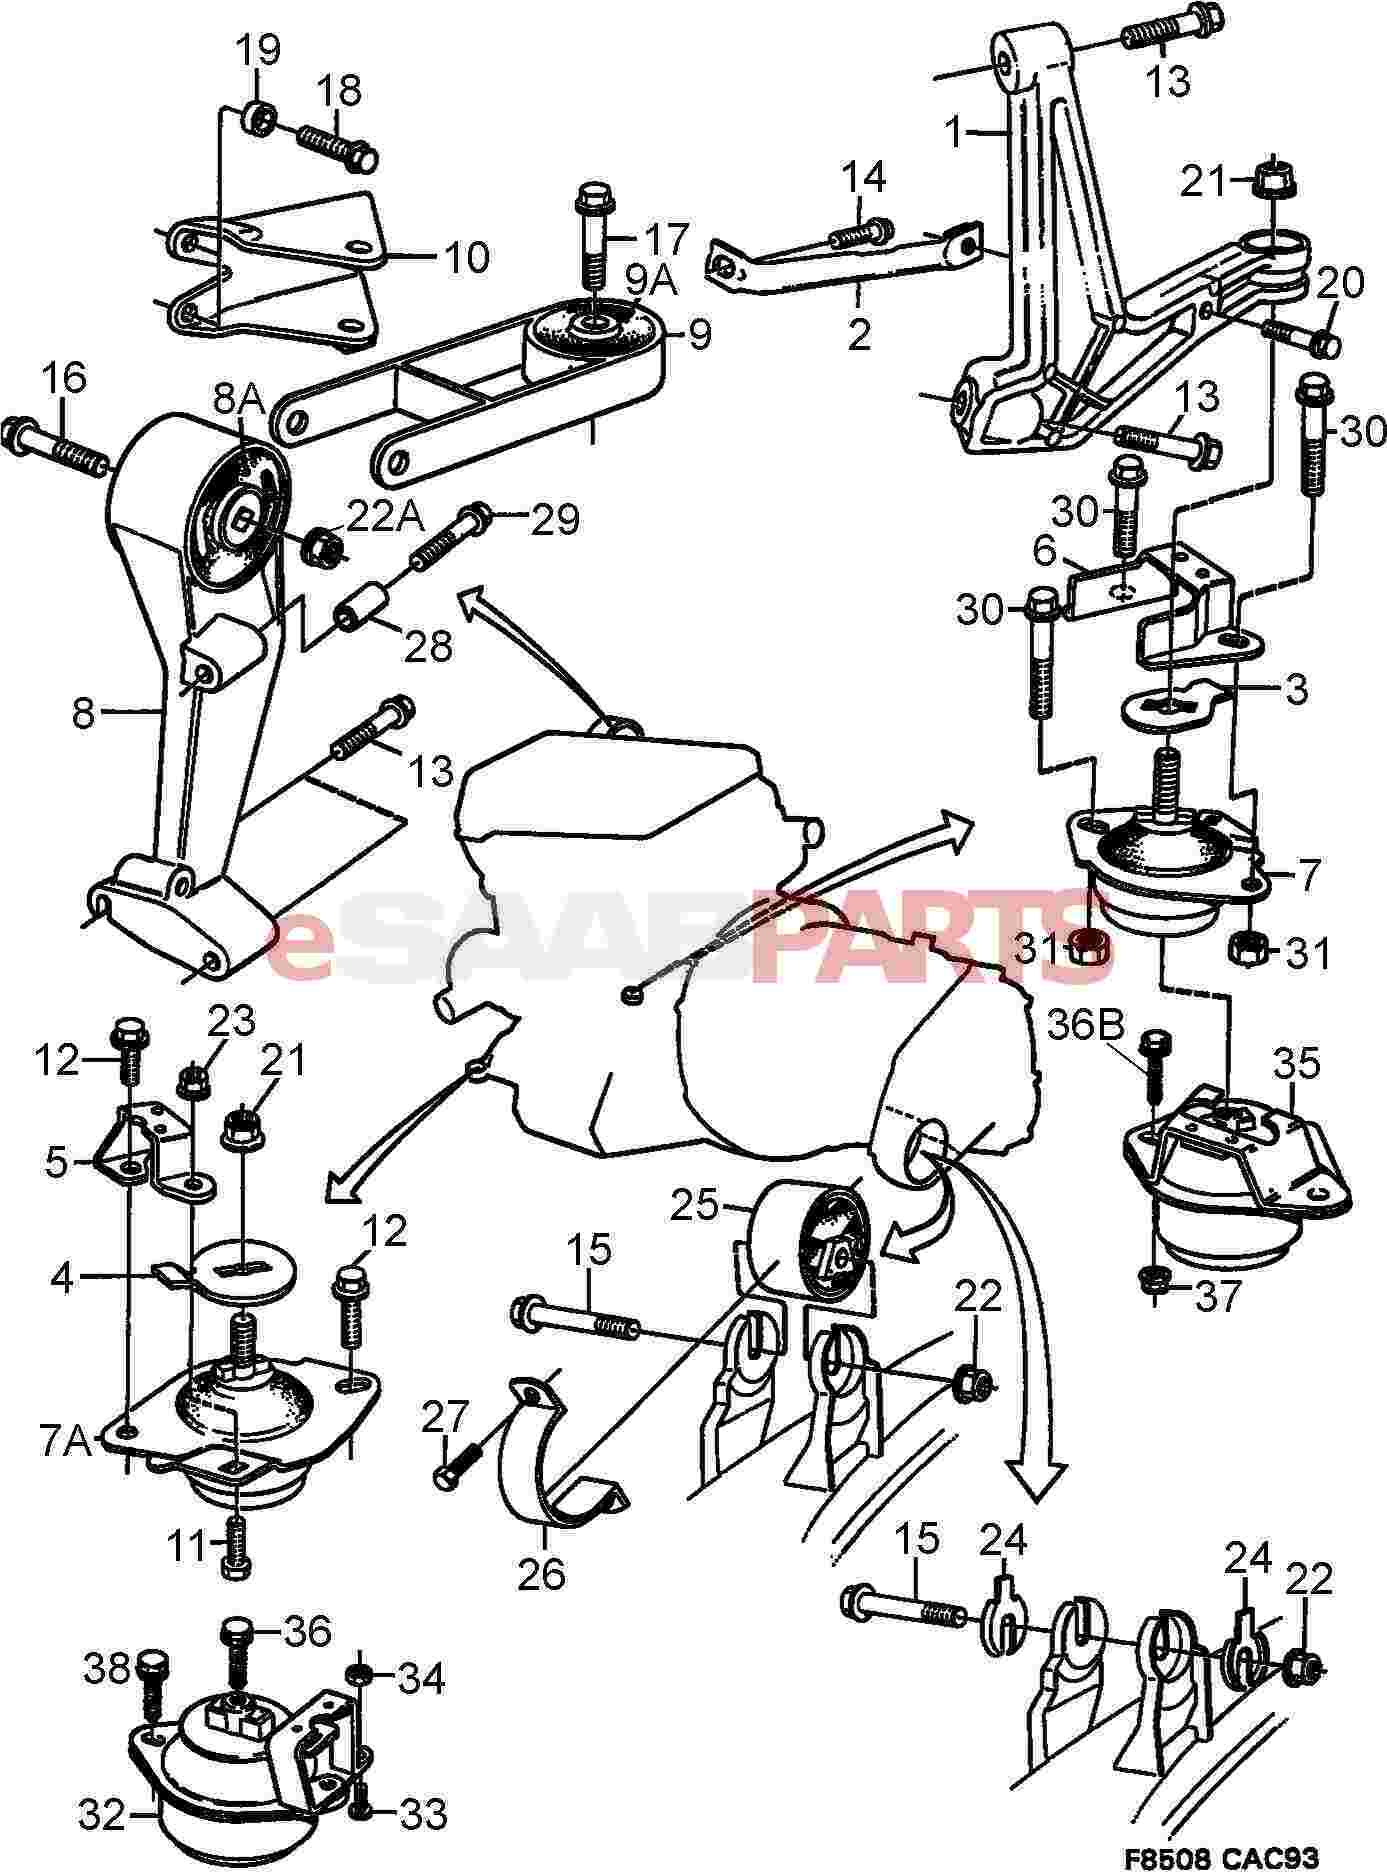 7576333 saab torque arm bushing genuine saab parts from rh esaabparts com Saab 9 3 Hose Diagram Saab 9 3 Hose Diagram